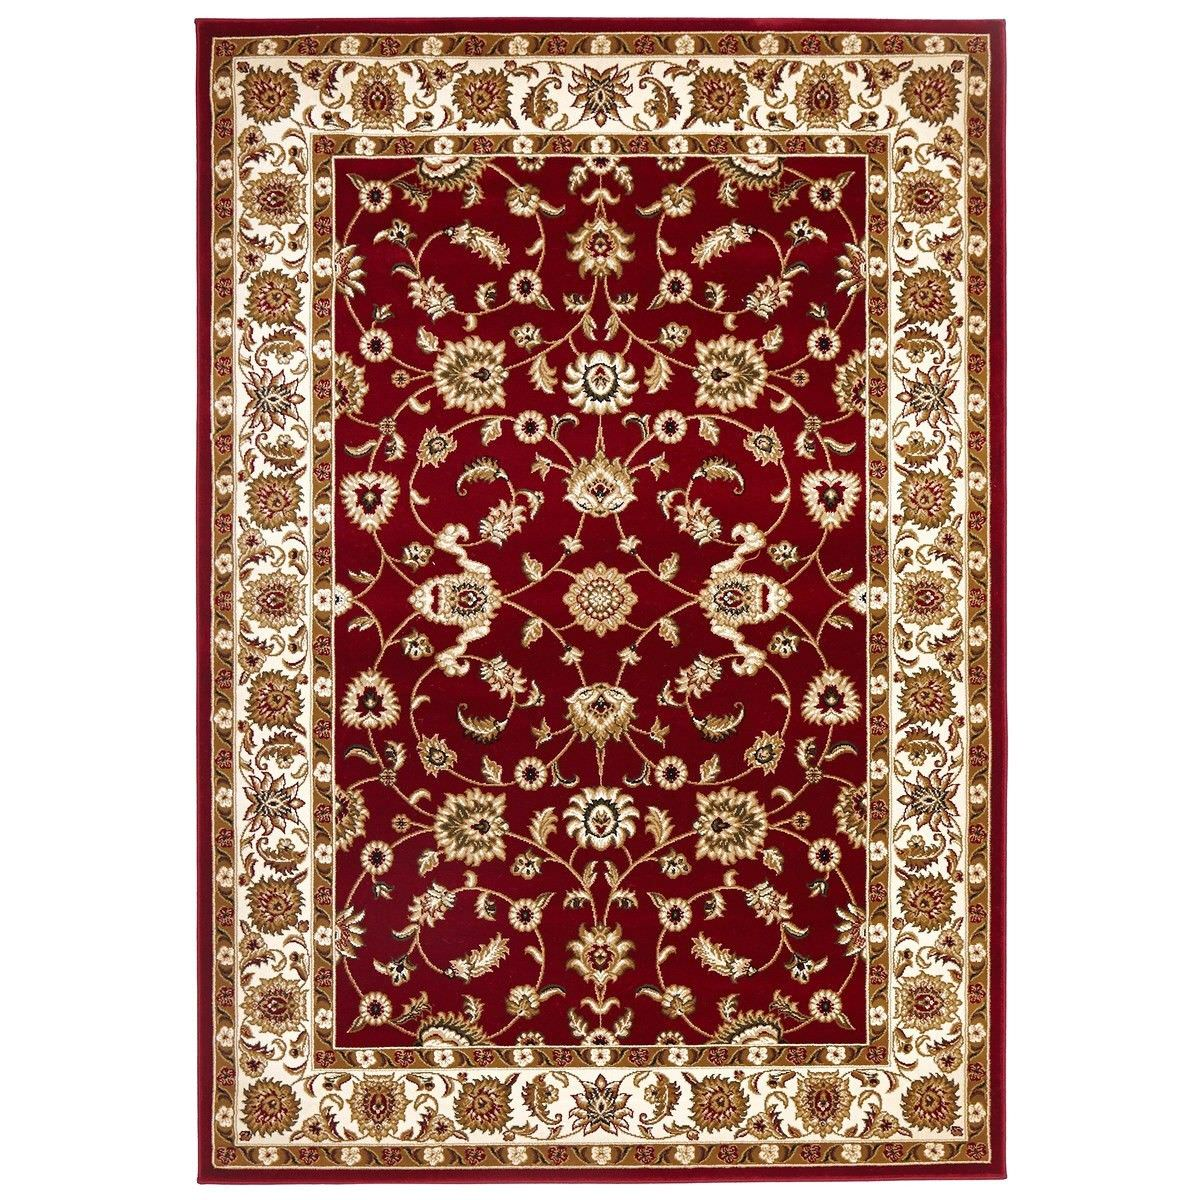 Sydney Classic Turkish Made Oriental Rug, 150x80cm, Red / Ivory